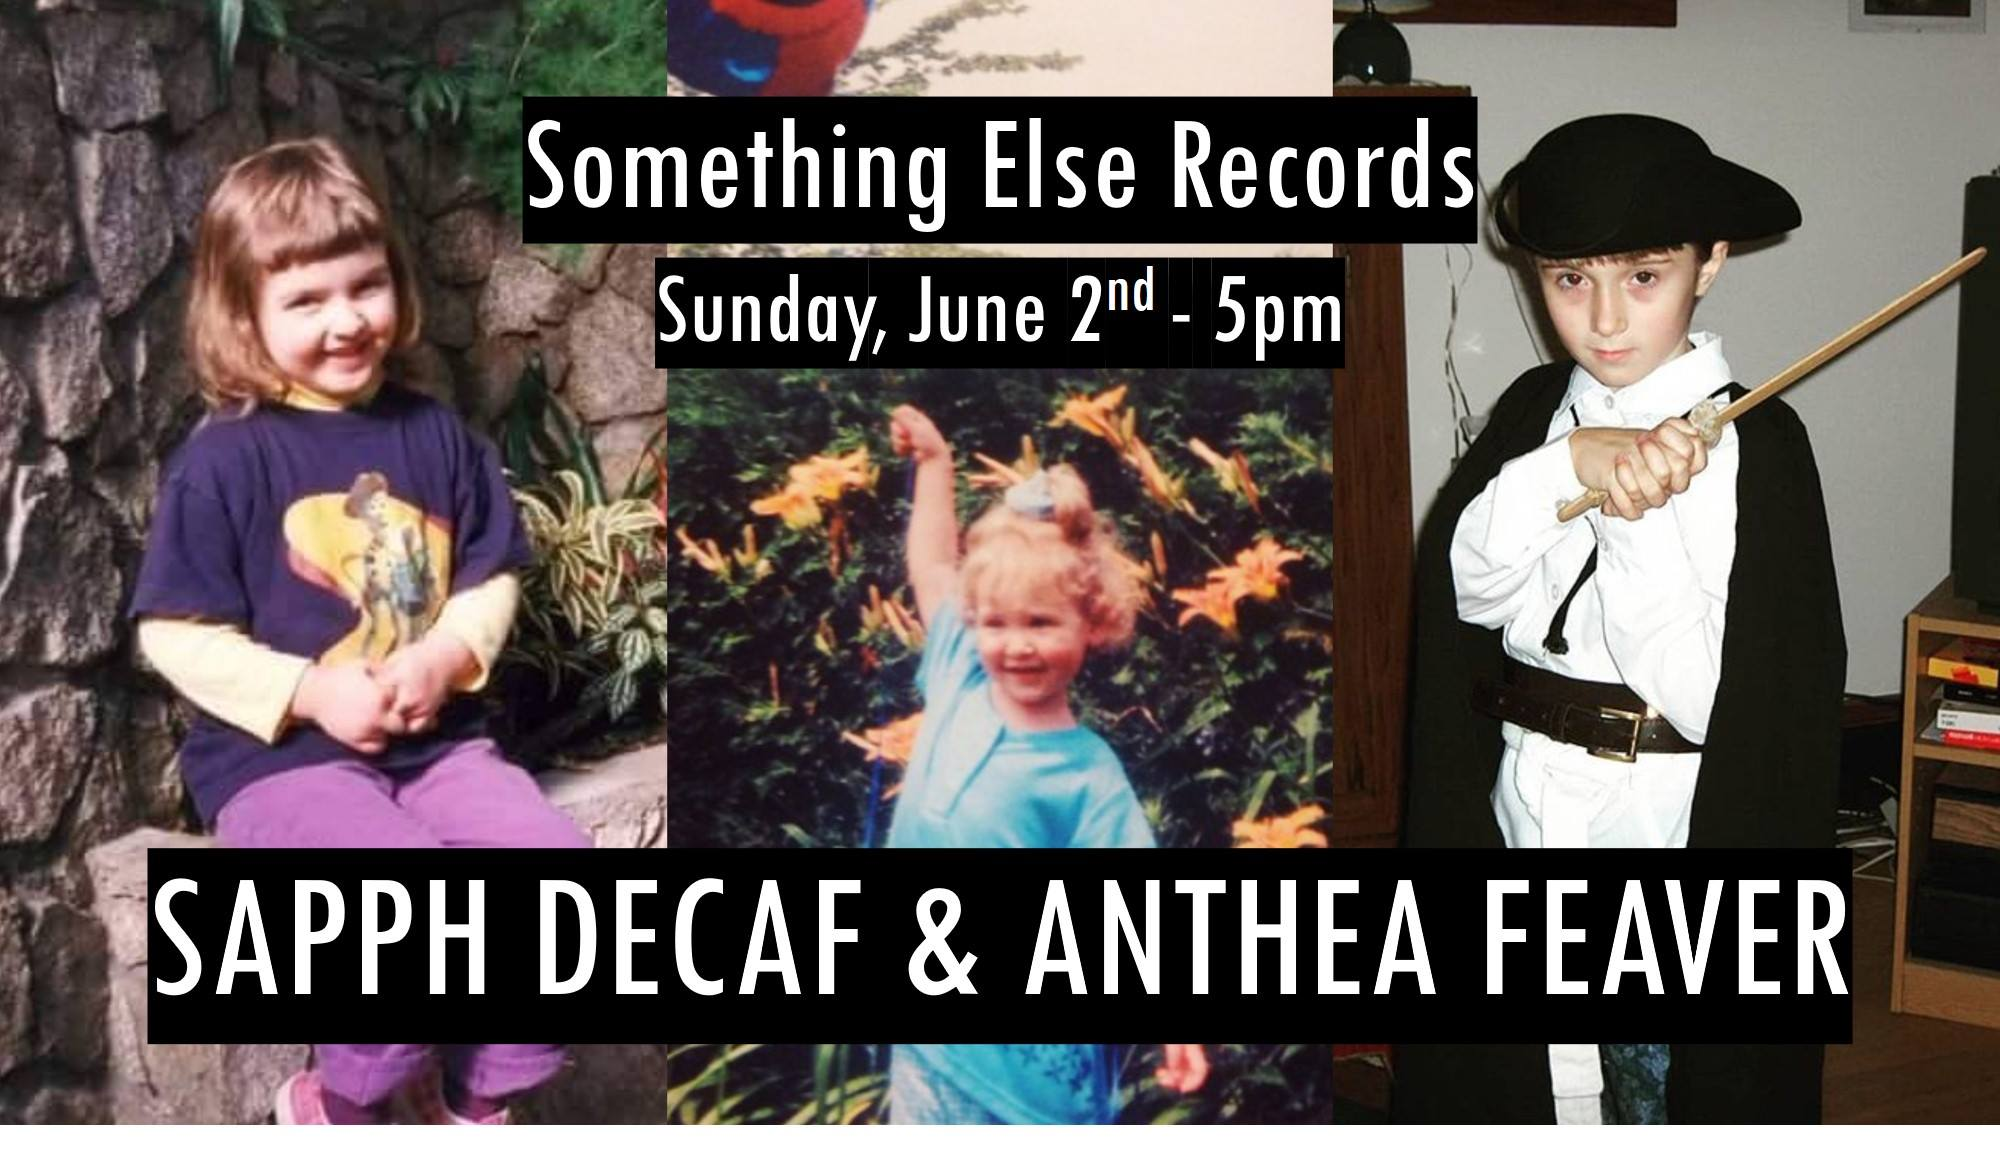 Sapph Decaf / Anthea Feaver at Something Else Records